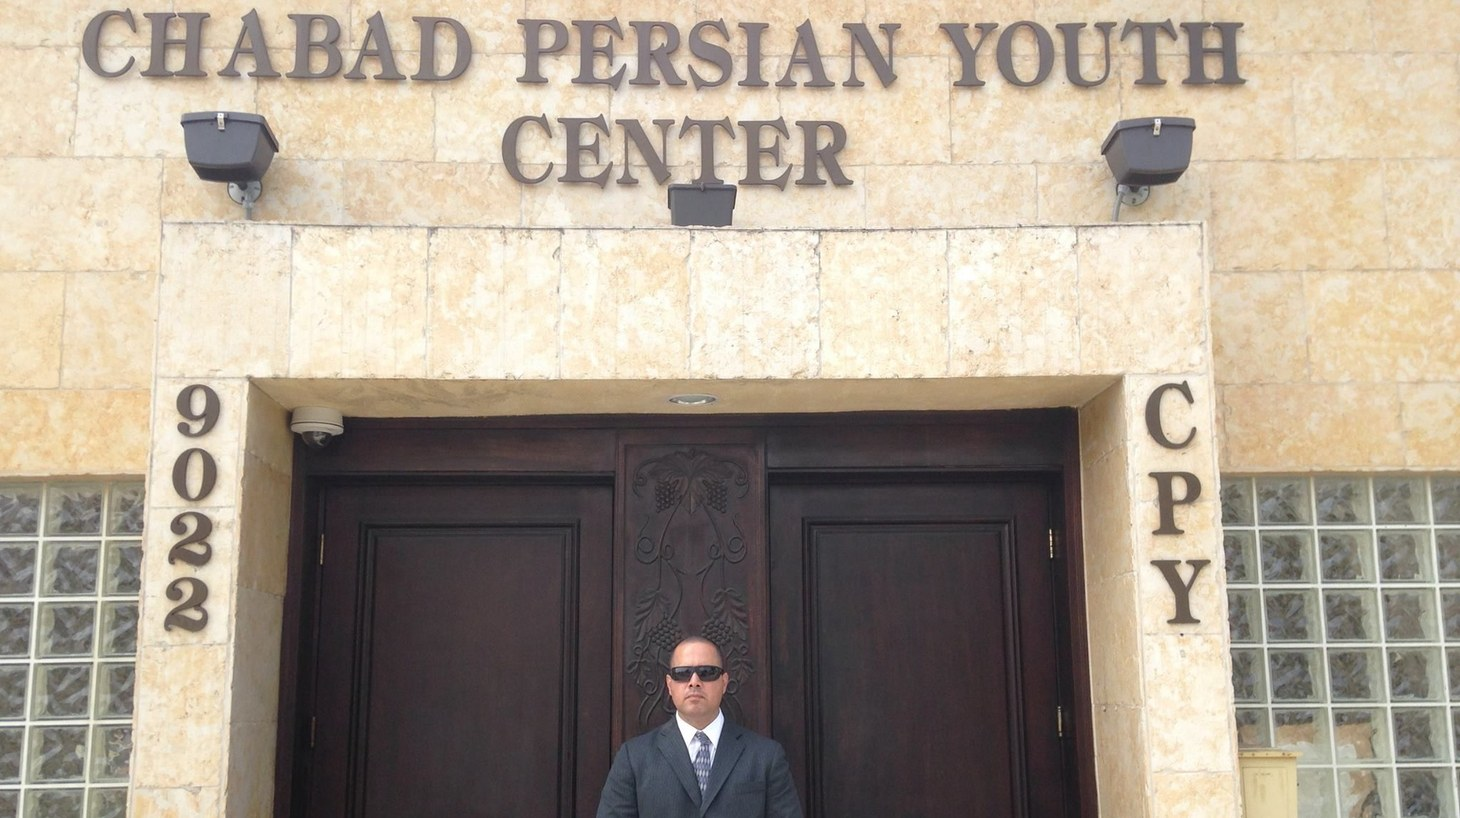 A security guard outside the Chabad Persian Youth Center in L.A.